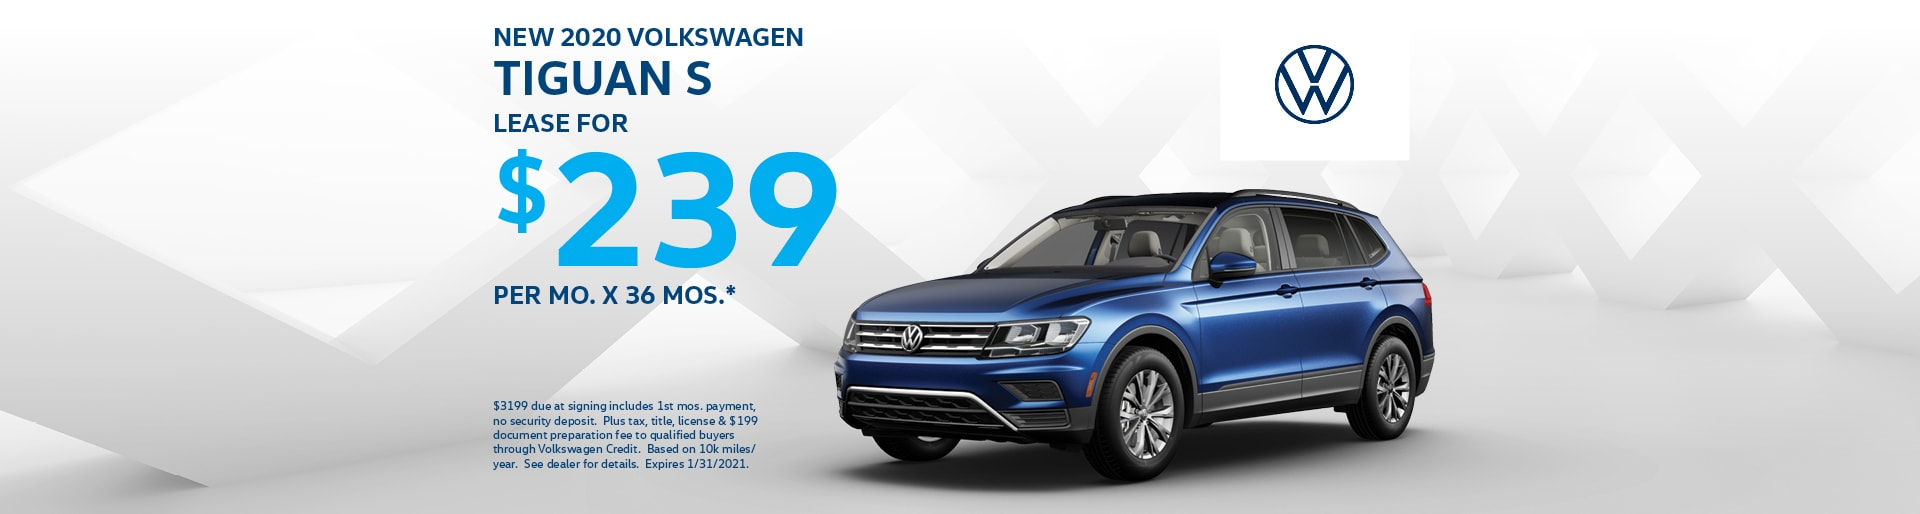 2020 Tiguan $239 Lease at Team VW | Merrillville, IN